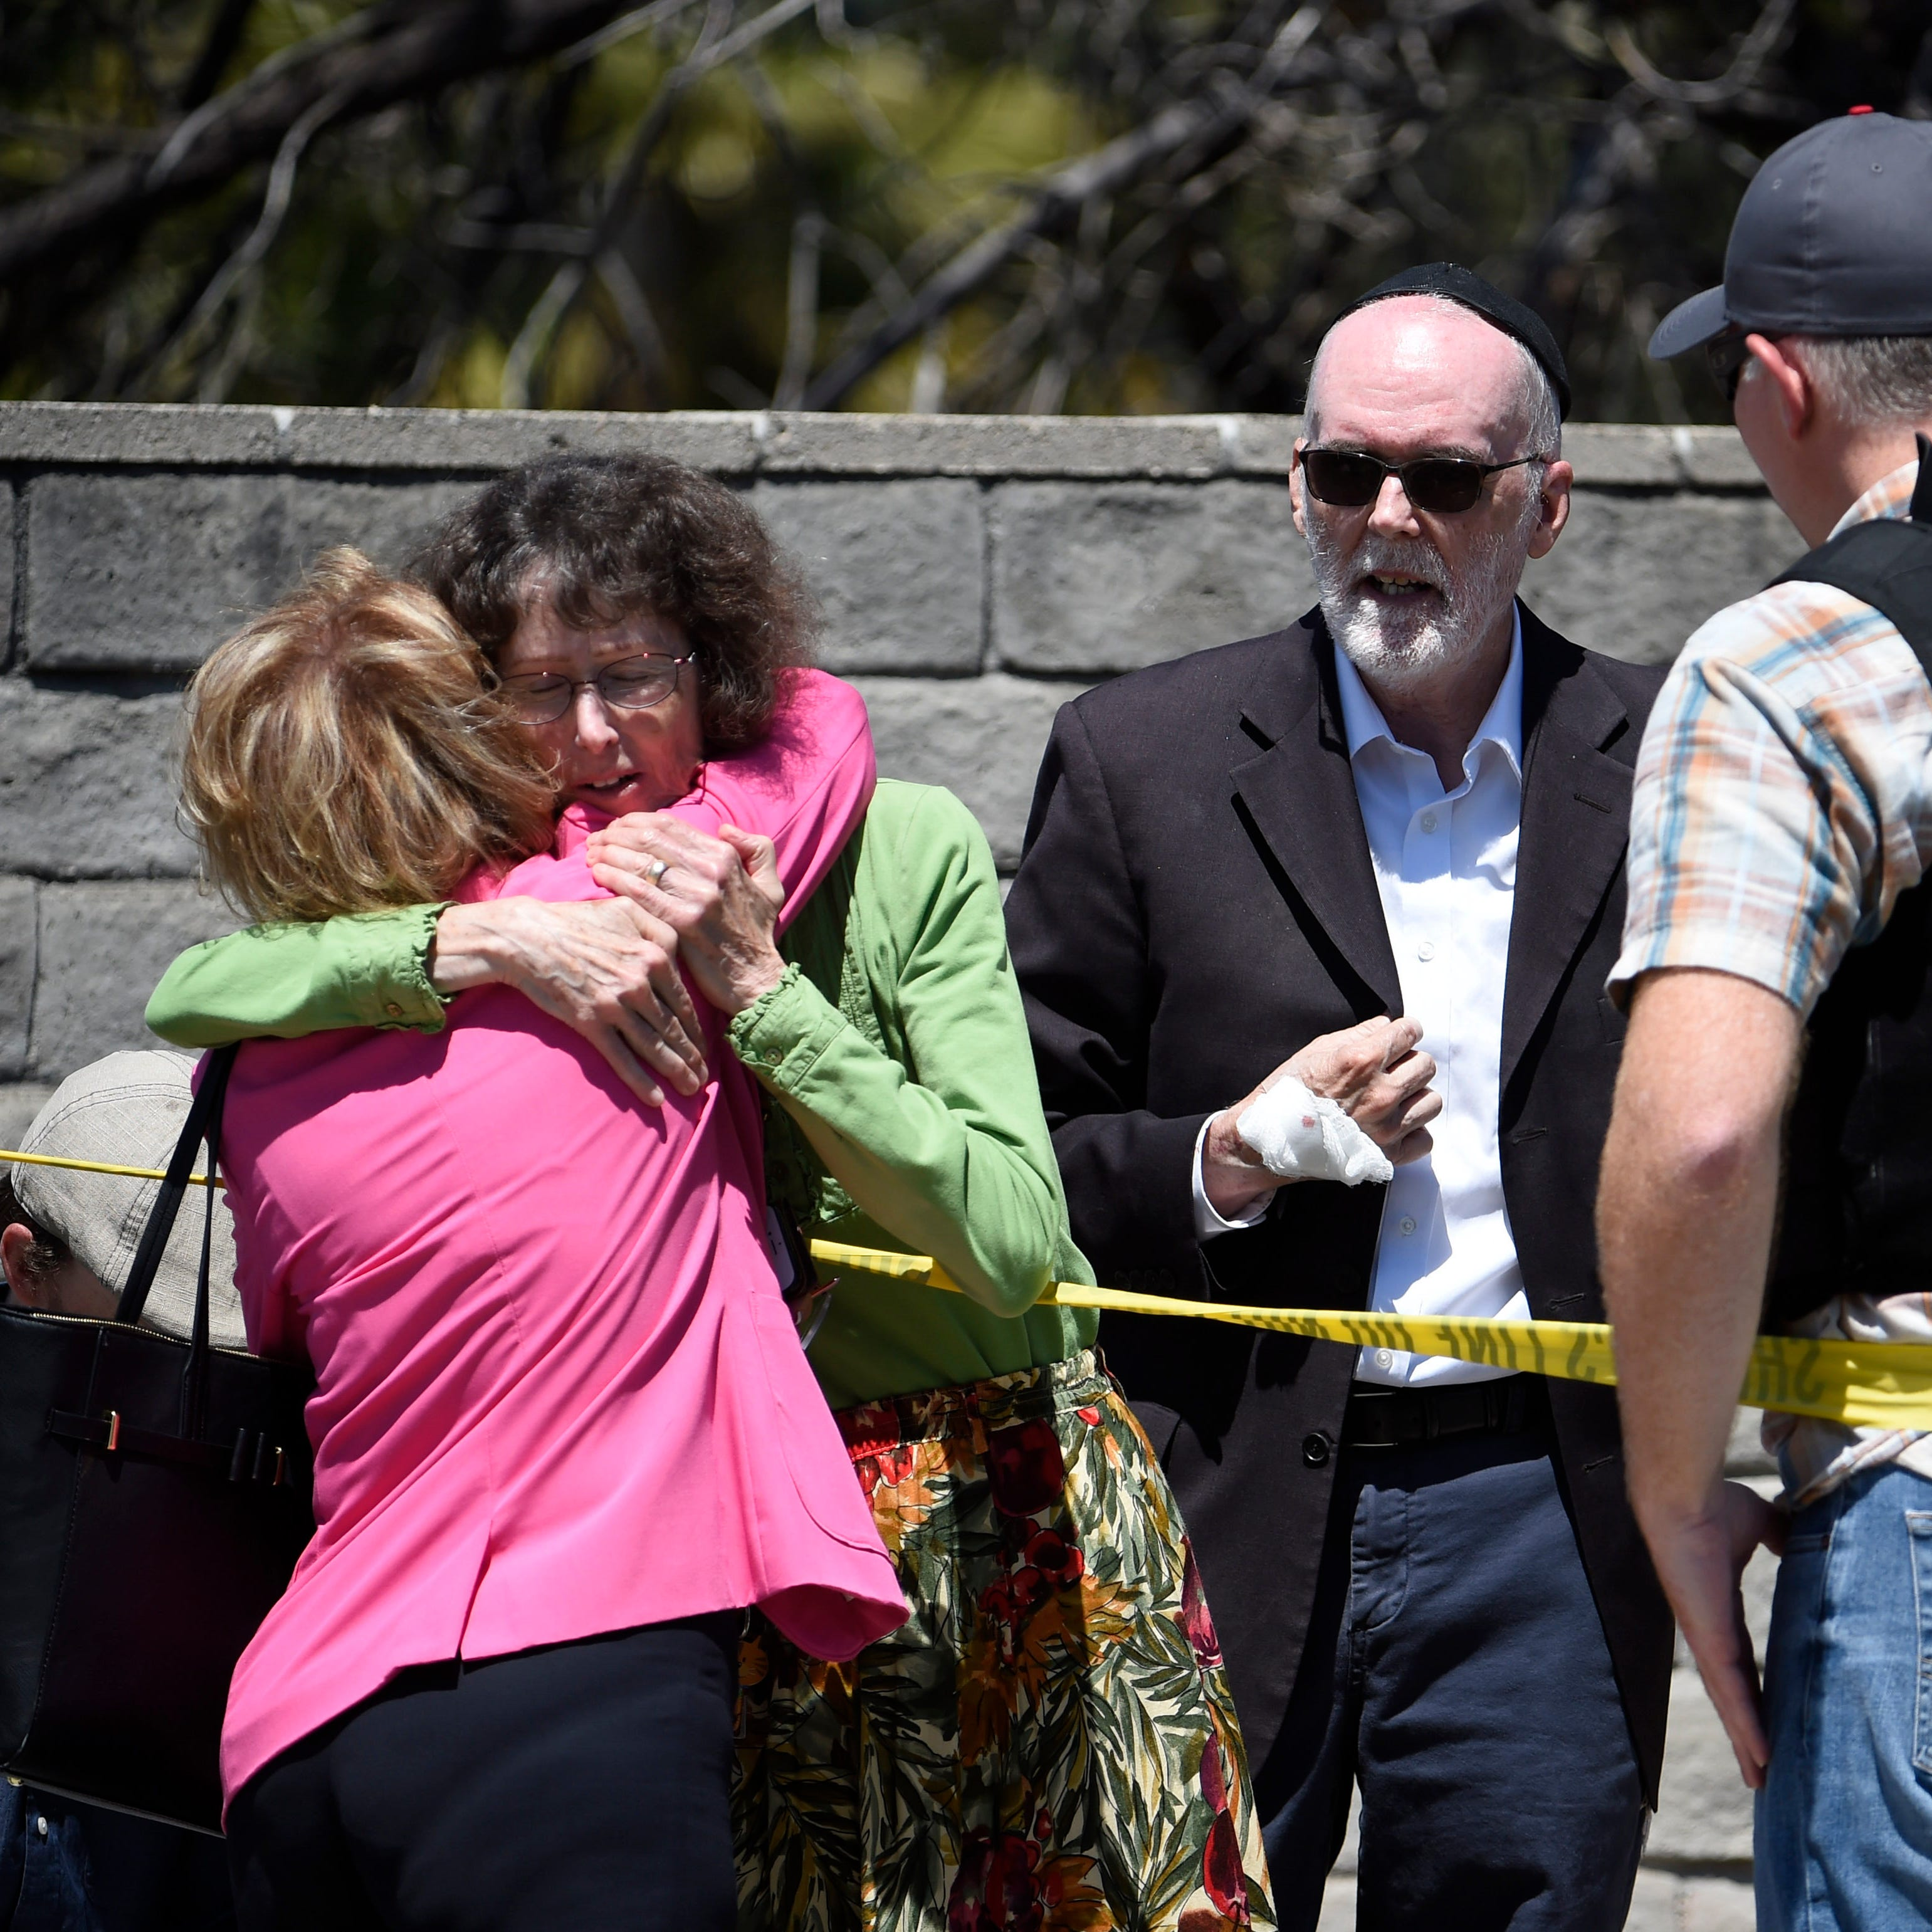 'People running everywhere': 1 dead, 3 wounded in Passover shooting at synagogue near San Diego